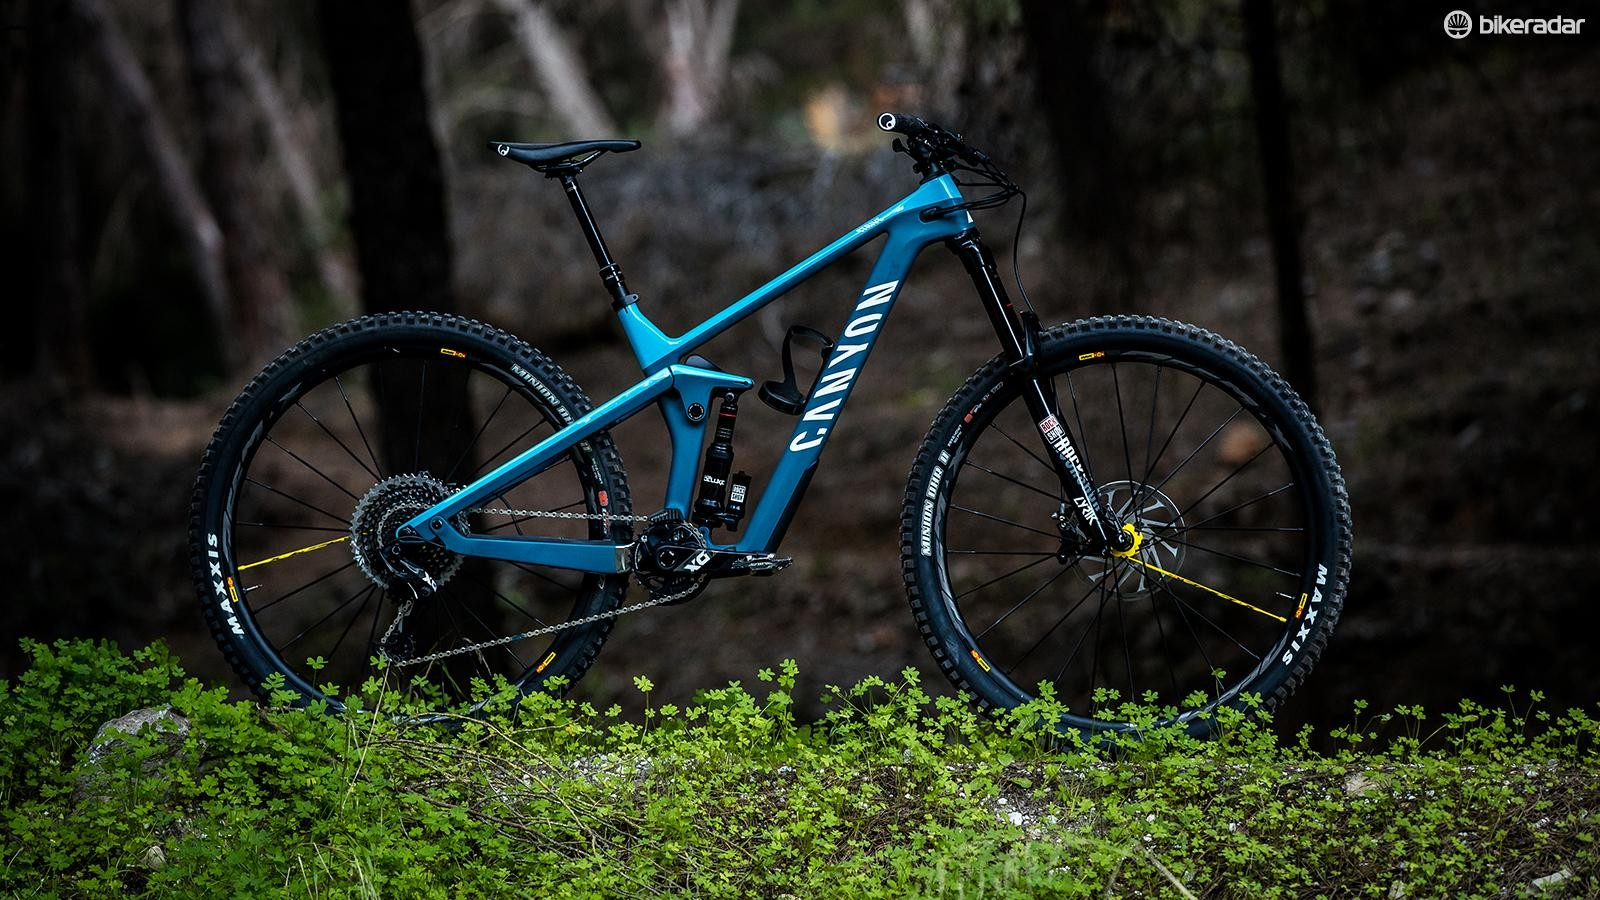 The new 29in Canyon Strive CFR 9.0 Team